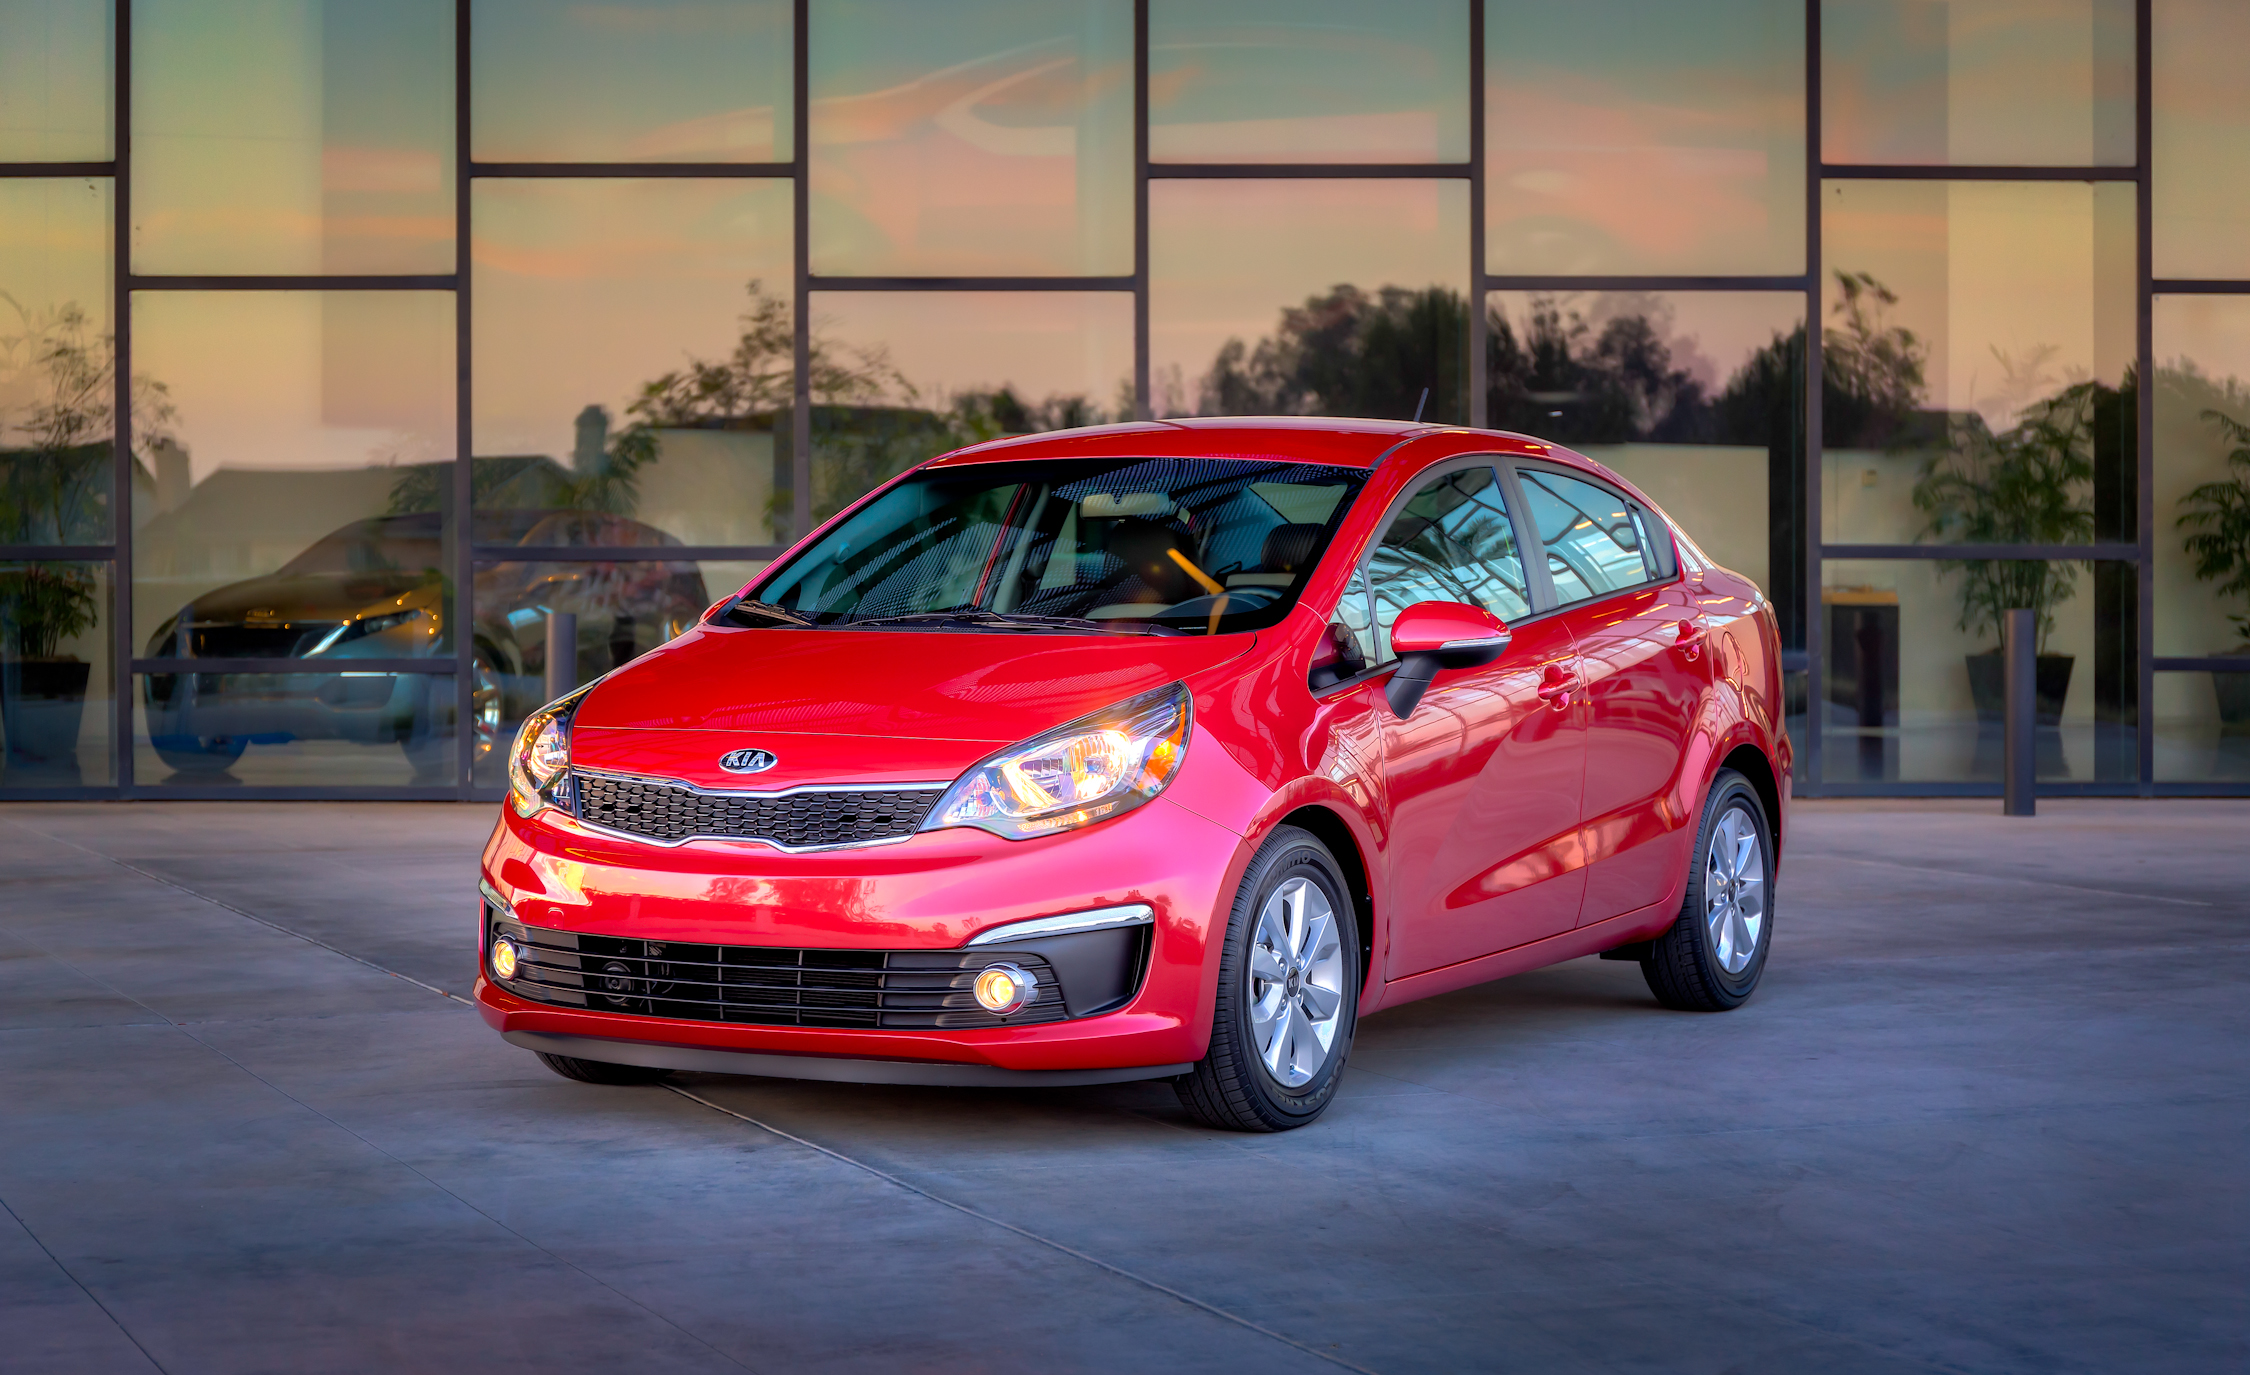 2016 Kia Rio Sedan (View 14 of 19)